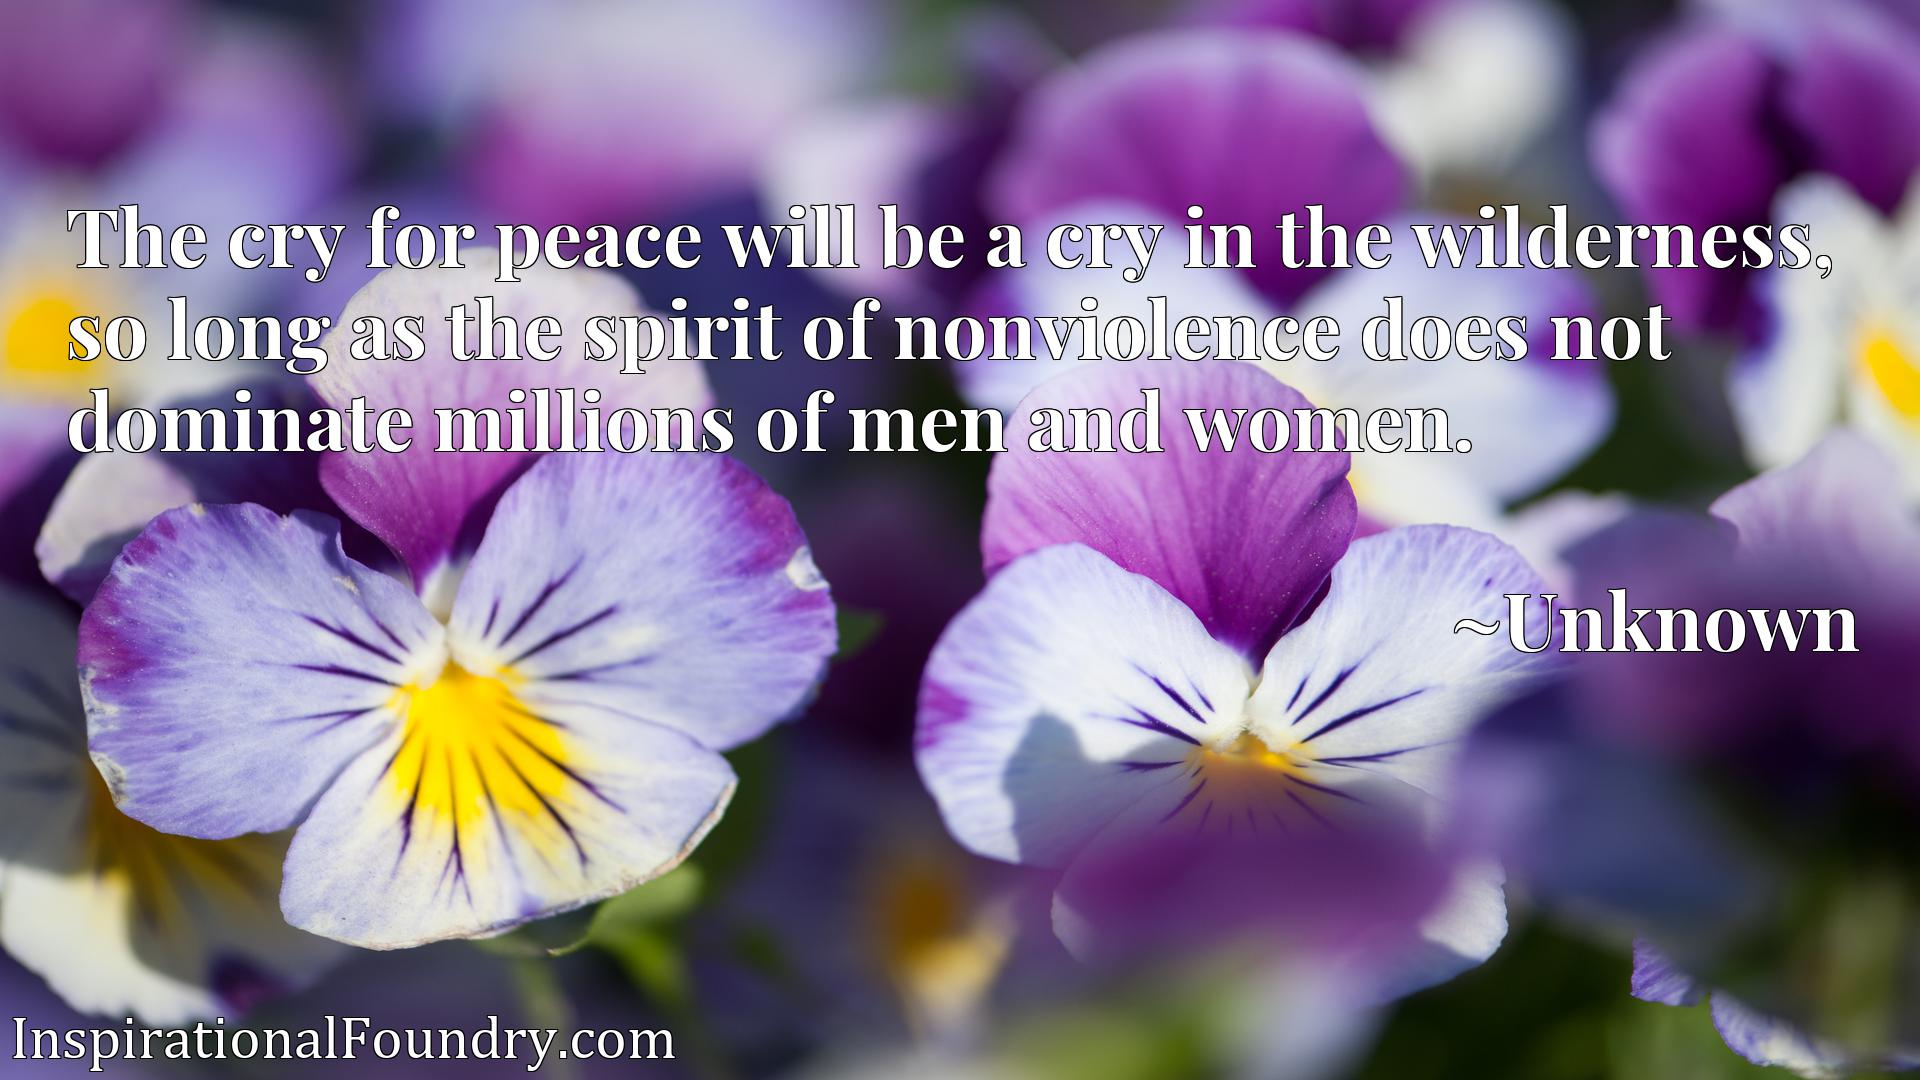 The cry for peace will be a cry in the wilderness, so long as the spirit of nonviolence does not dominate millions of men and women.